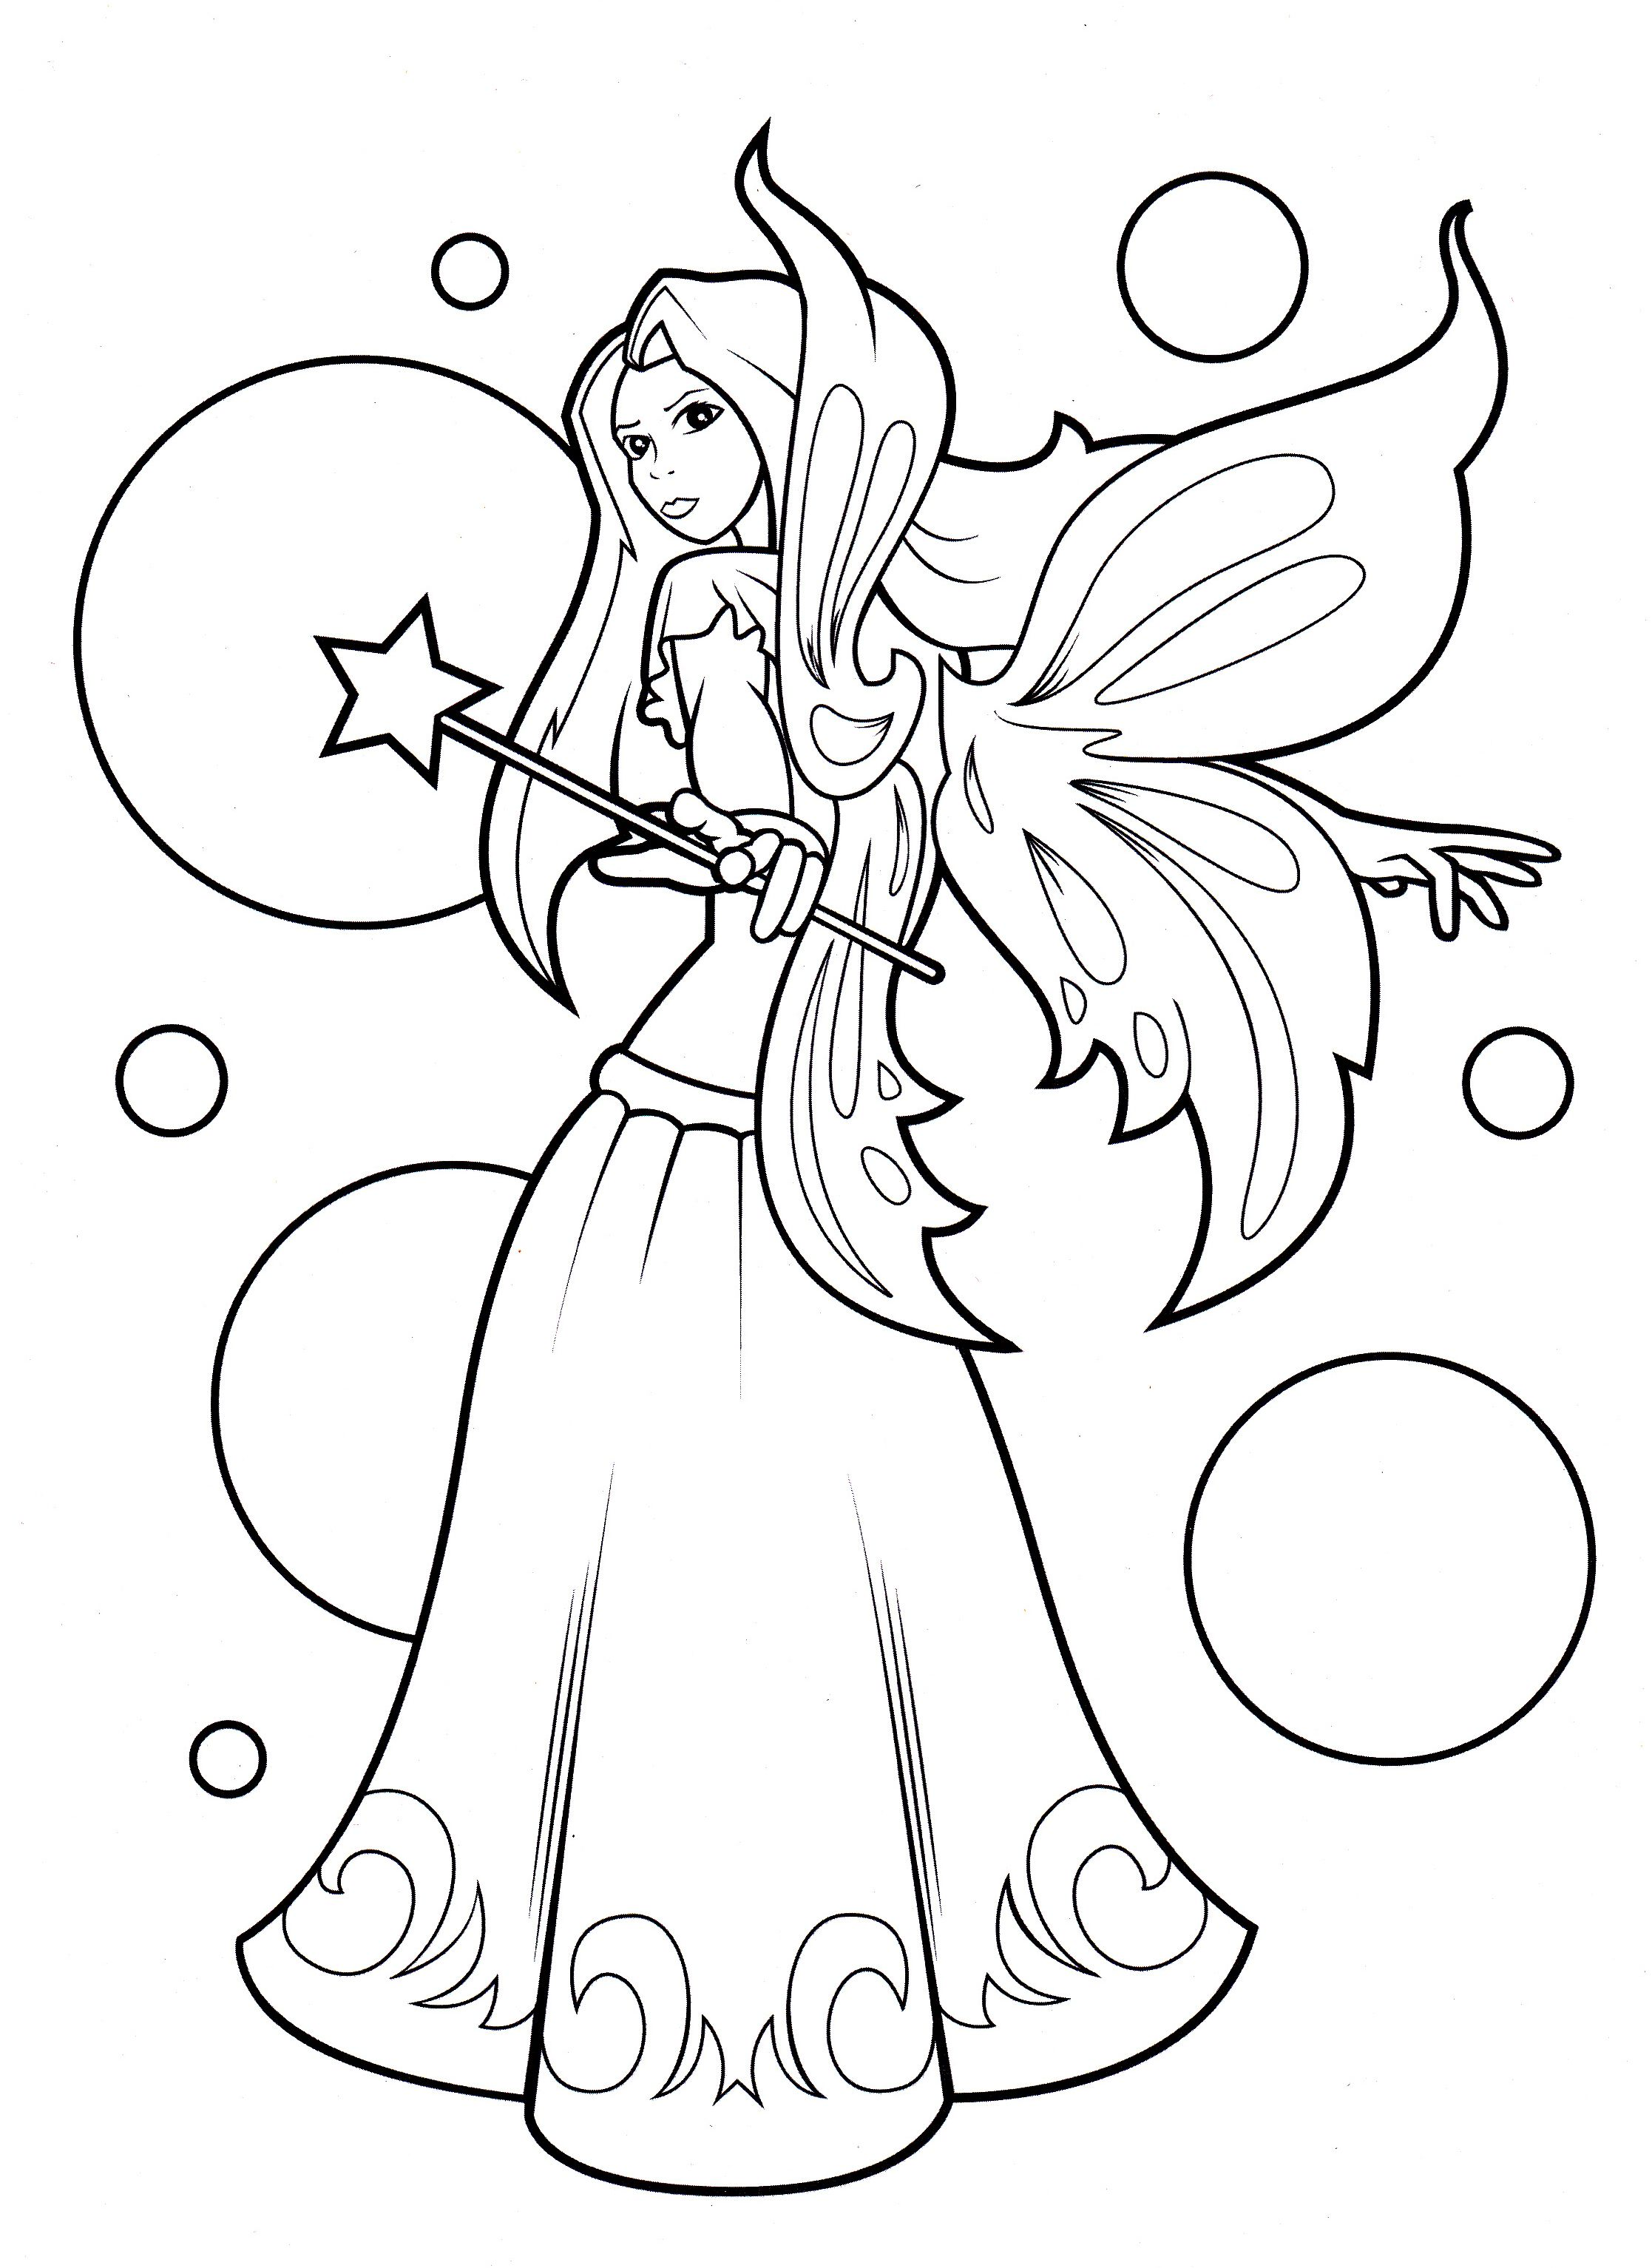 Fairy from Lilly Butterfly coloring book | Детские раскраски ...